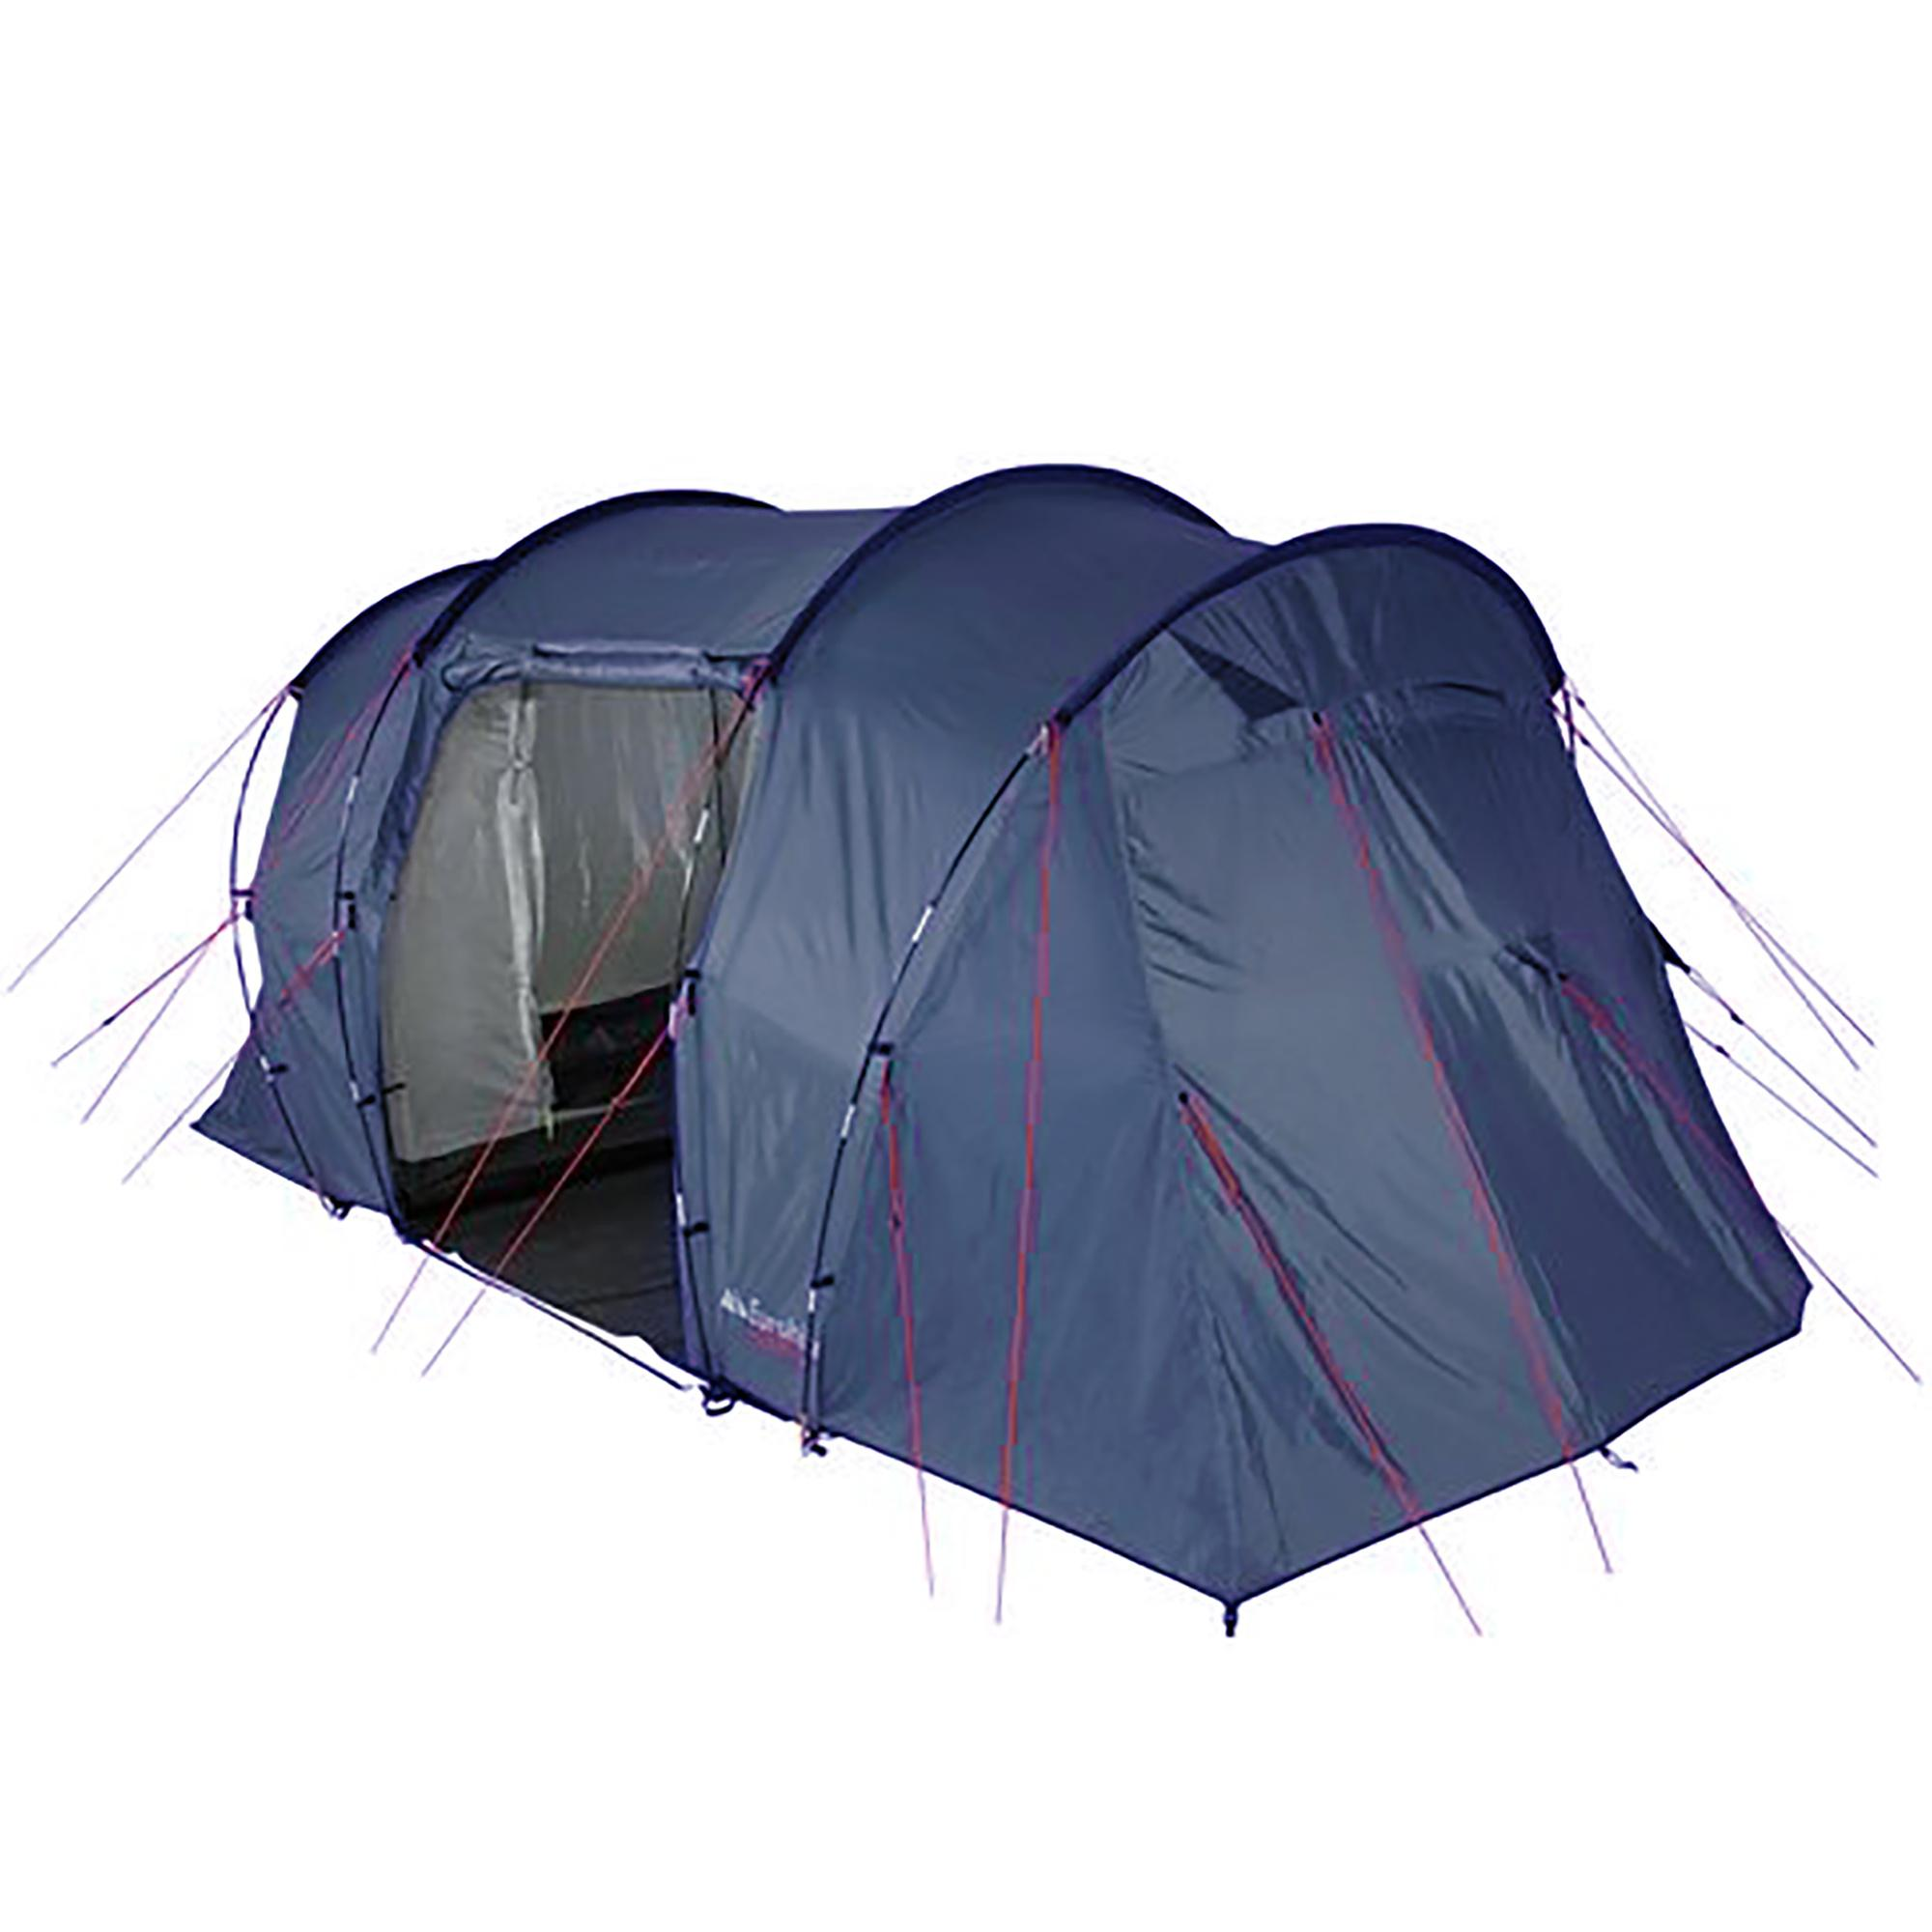 HIGH POINT Cairngorm 4 Man Tunnel Tent  sc 1 st  Millets & HIGH POINT Cairngorm 4 Man Tunnel Tent | Millets